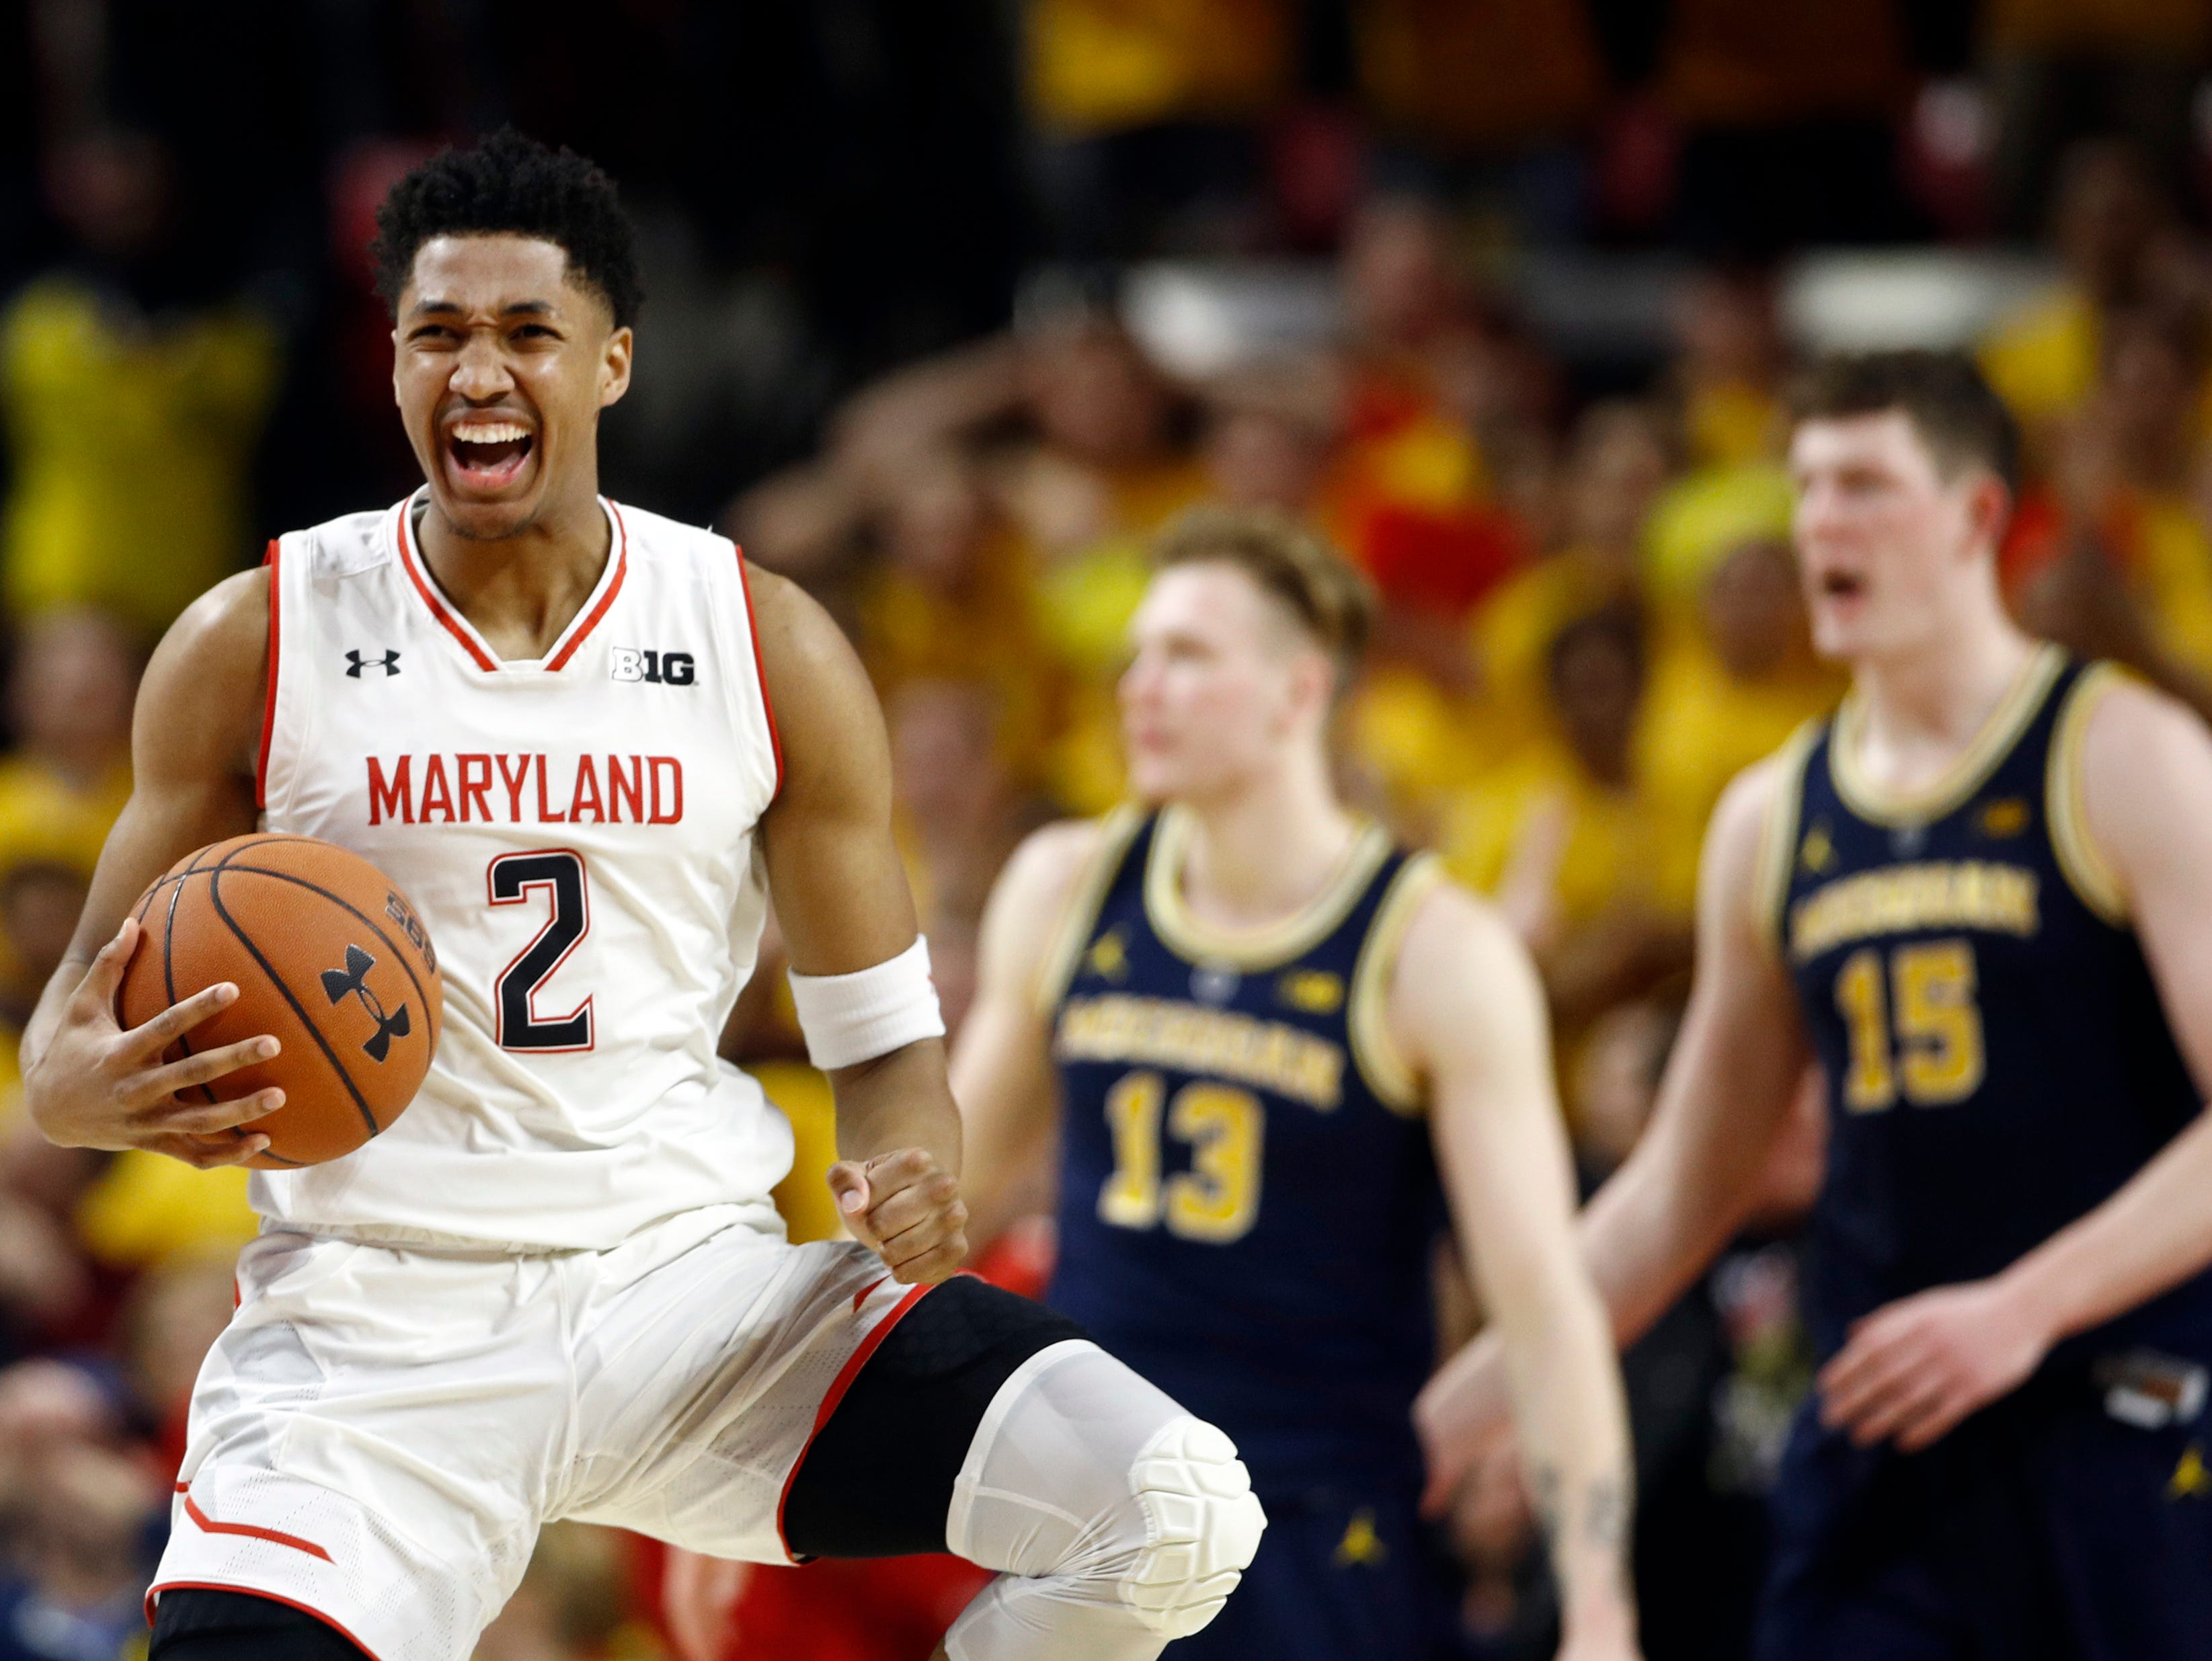 Maryland guard Aaron Wiggins, left, reacts after fouling Michigan forward Ignas Brazdeikis, of Canada, (13) in the second half.